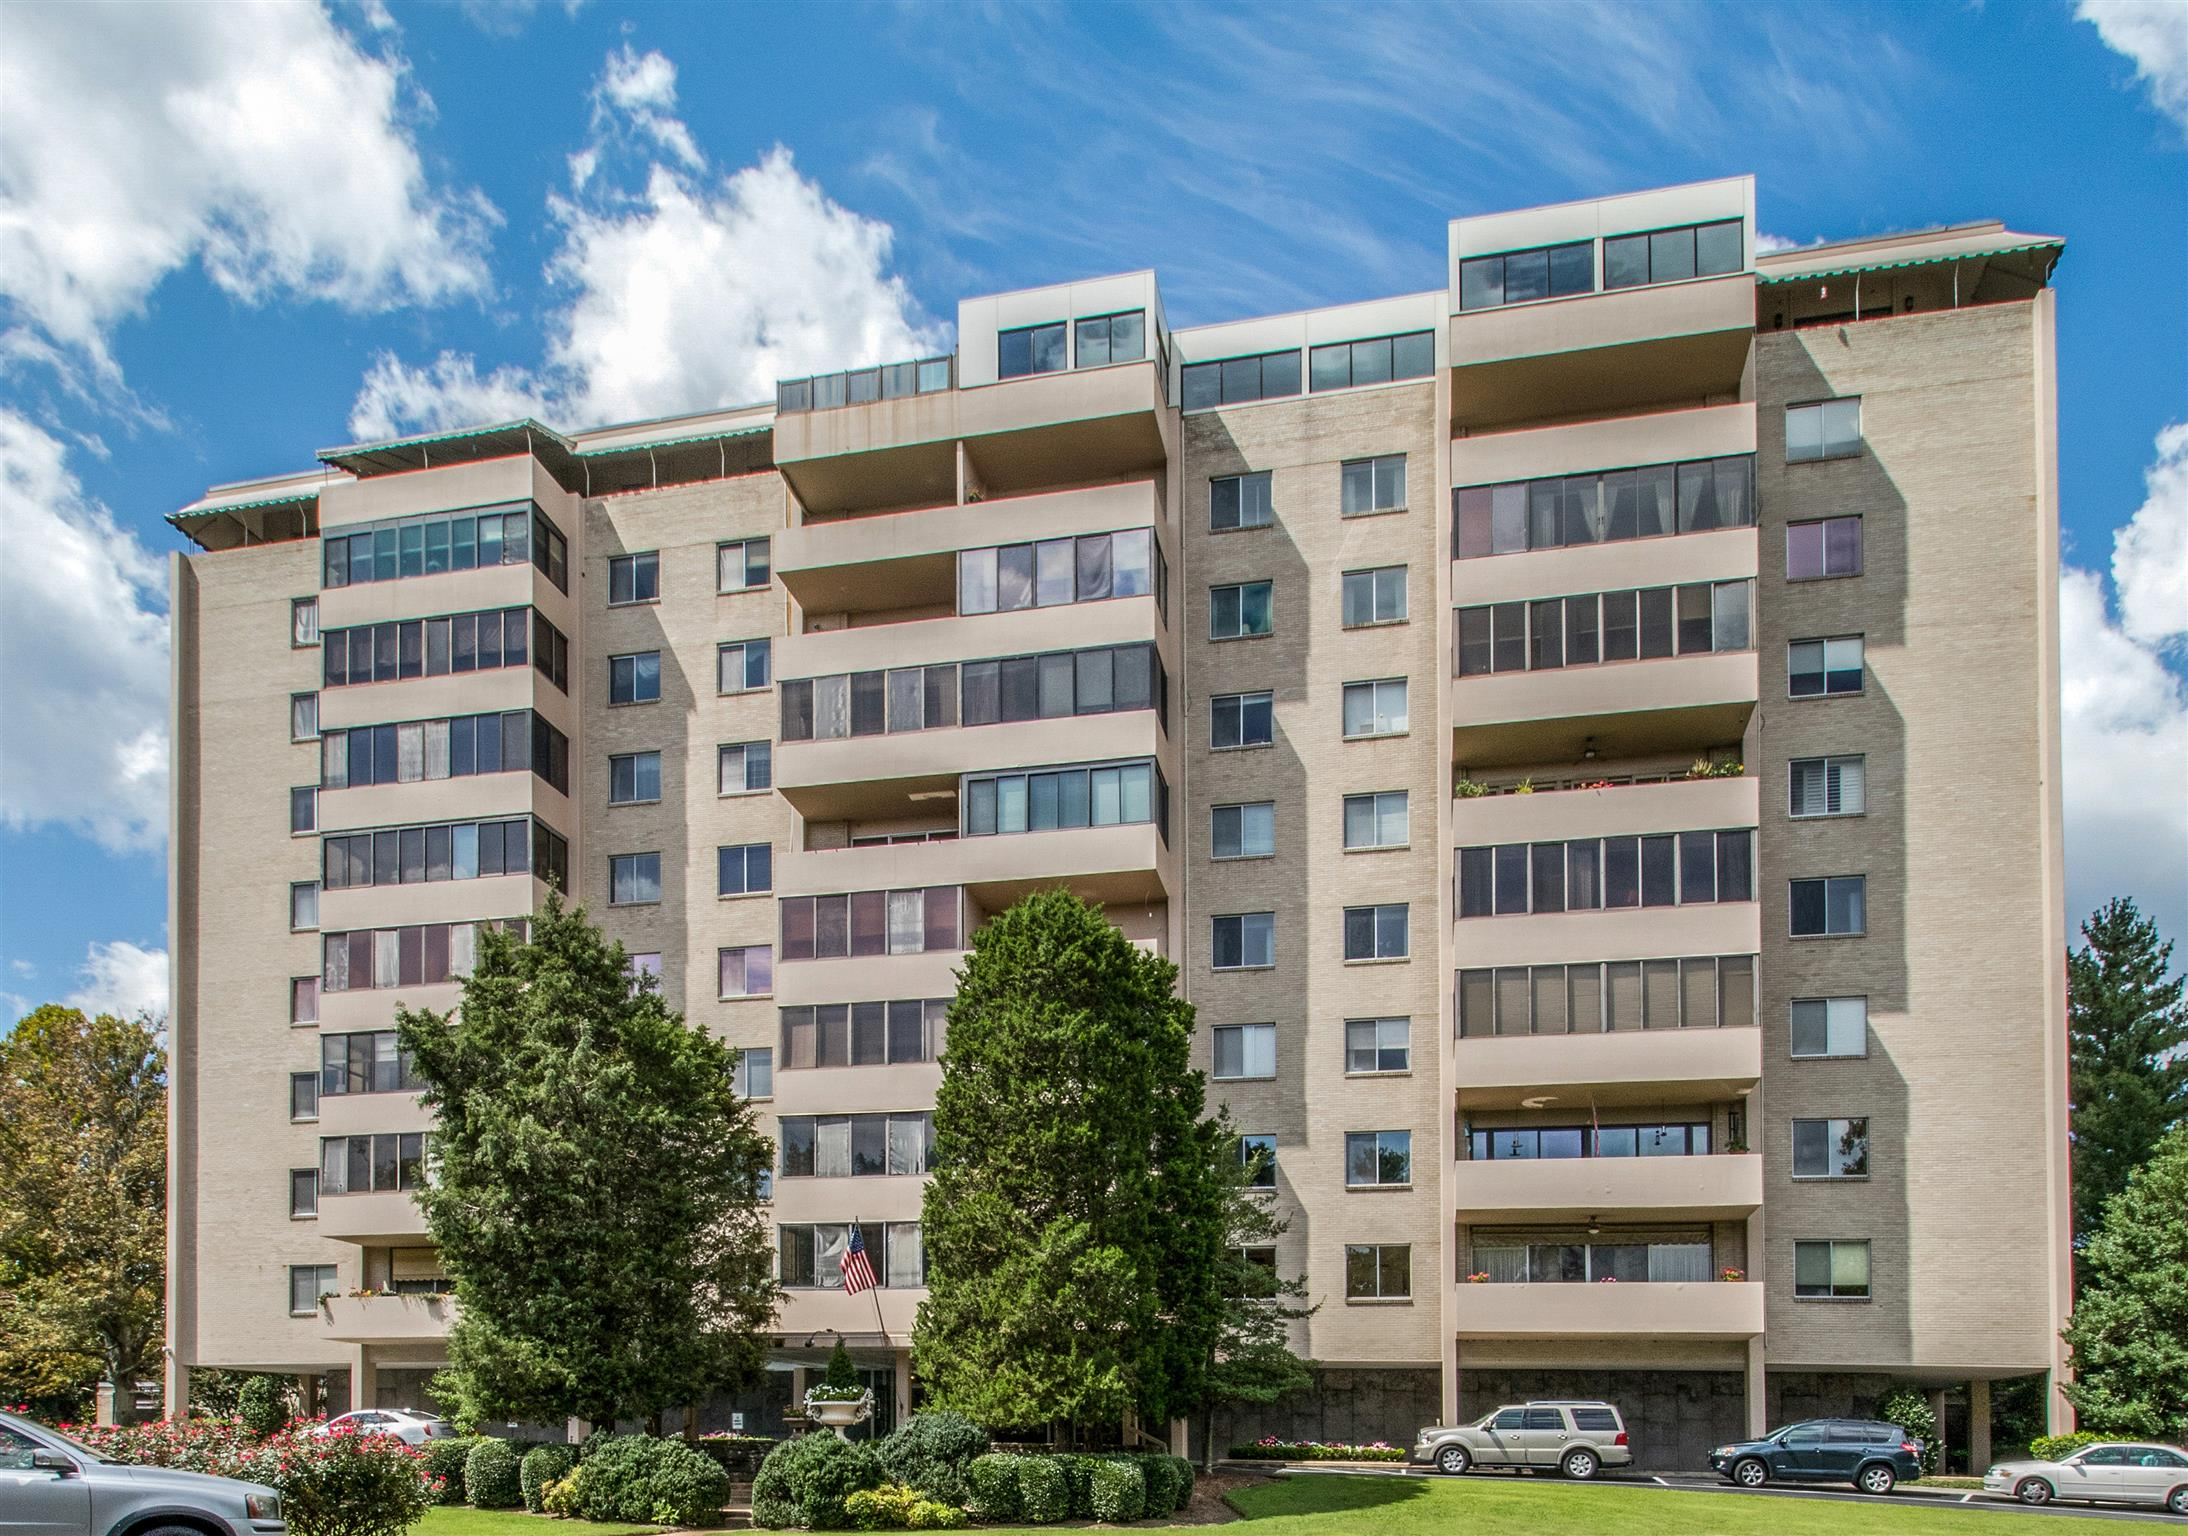 105 Leake Ave Apt 26, Belle Meade in Davidson County County, TN 37205 Home for Sale